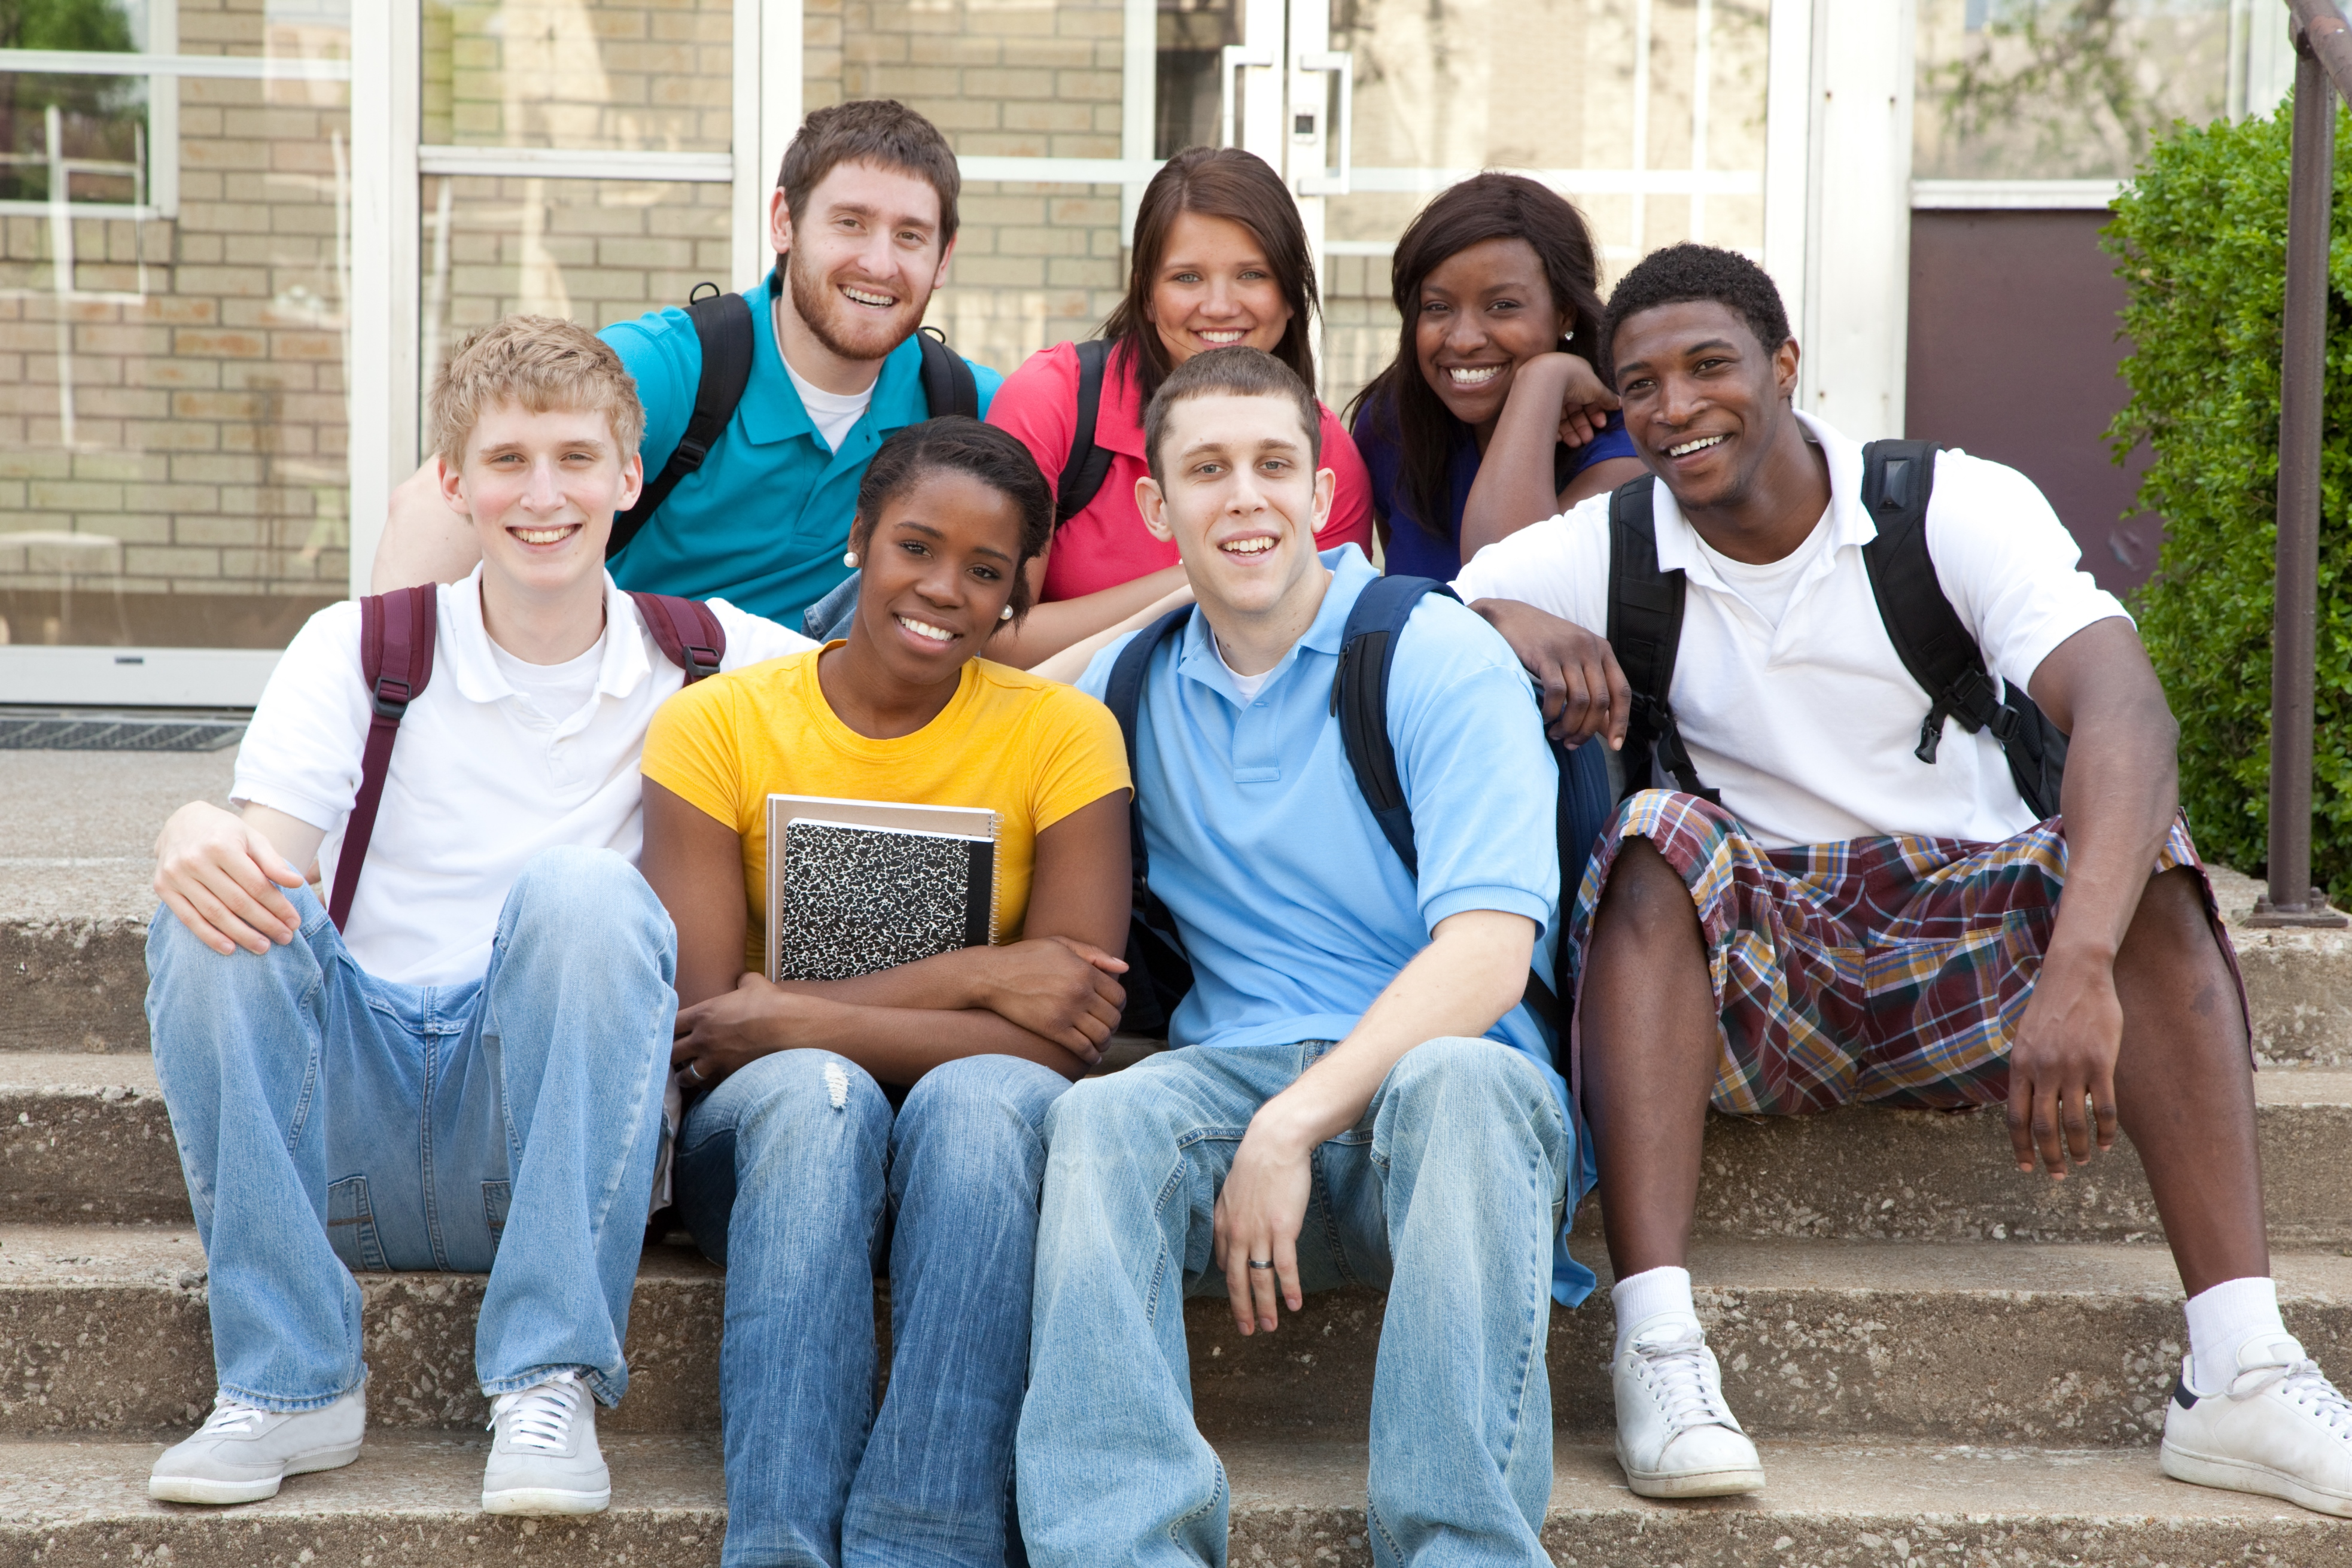 bigstock-A-multi-racial-group-of-Colleg-20321627.jpg